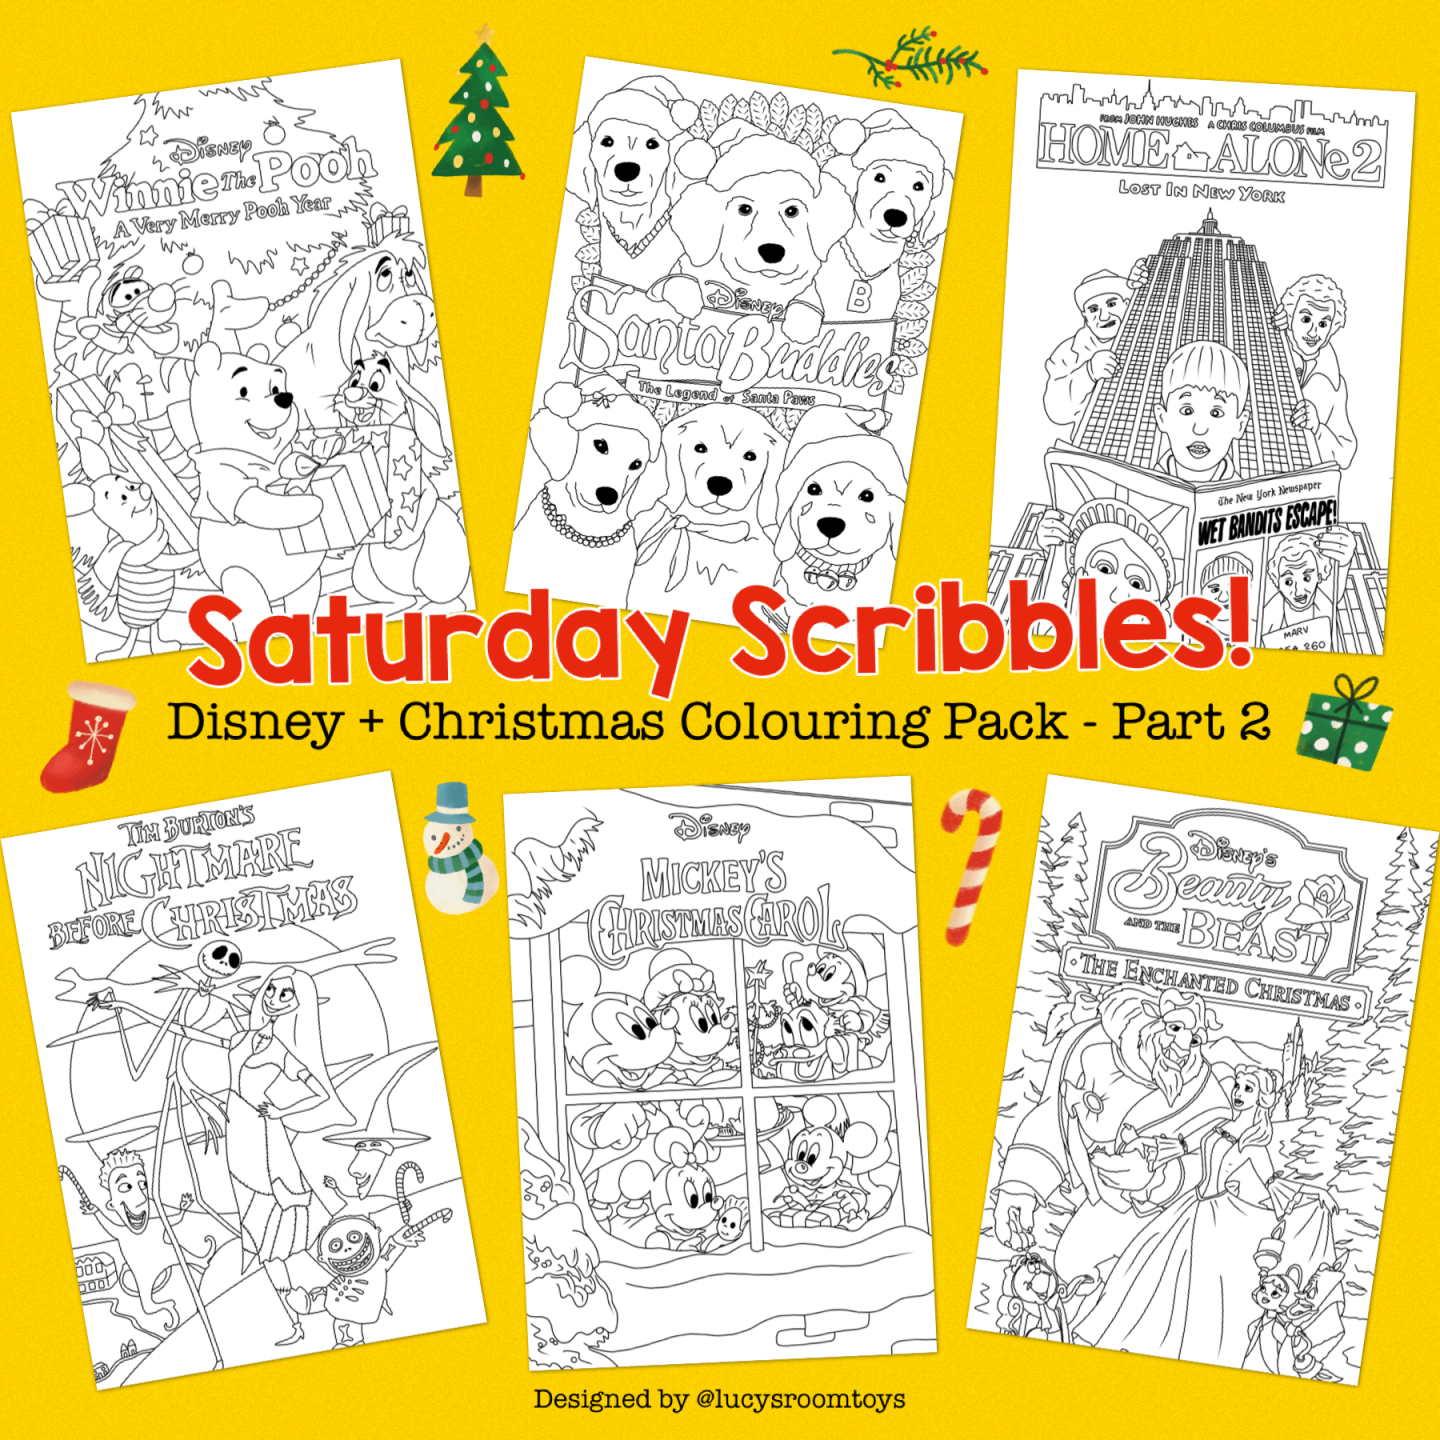 Saturday Scribbles – Disney + Christmas Colouring Pack (Part 2)